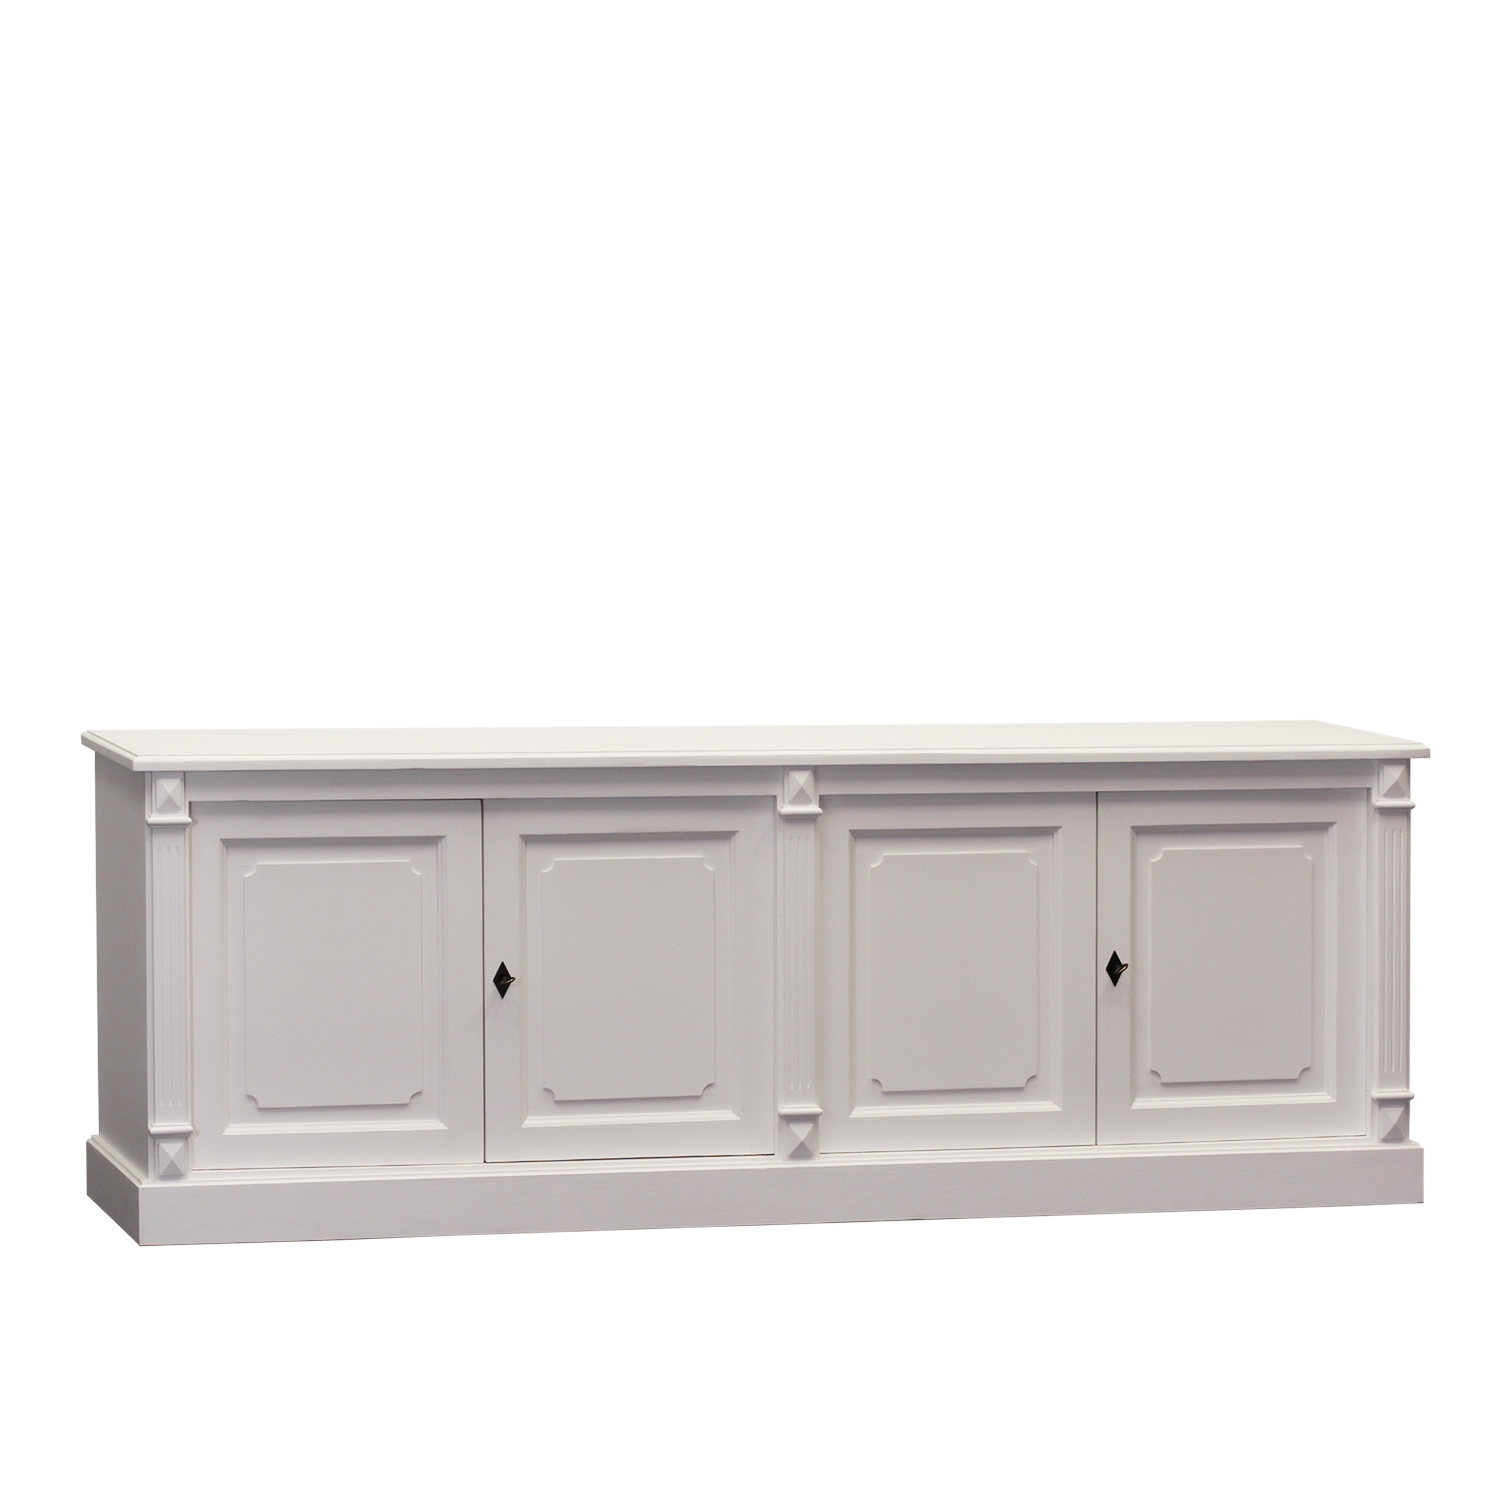 Sideboard Louis 45D119Inf Intended For 2018 Etienne Sideboards (#13 of 20)